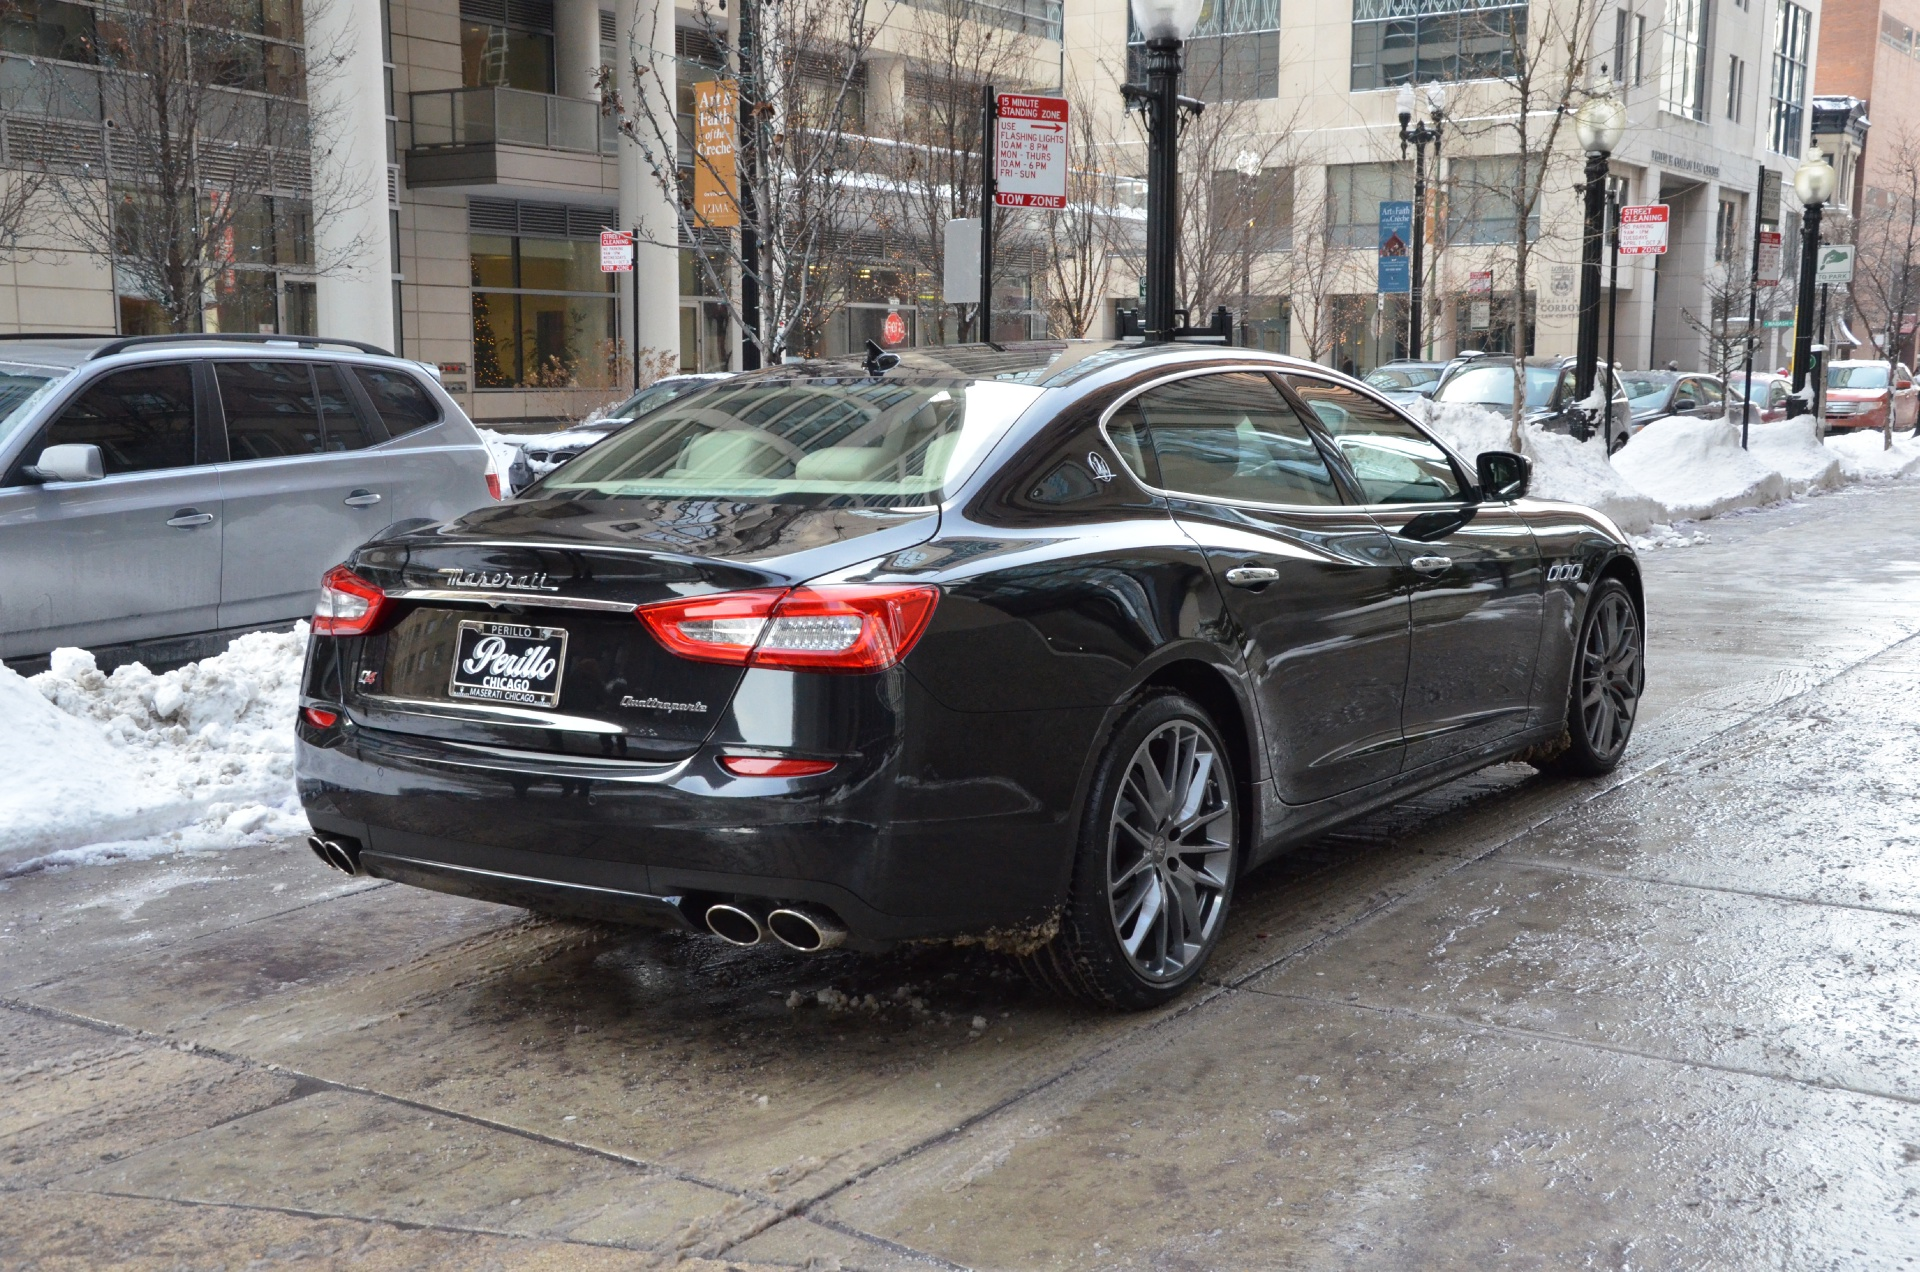 2014 maserati quattroporte s q4 s q4 stock m274 s for sale near chicago il il maserati dealer. Black Bedroom Furniture Sets. Home Design Ideas